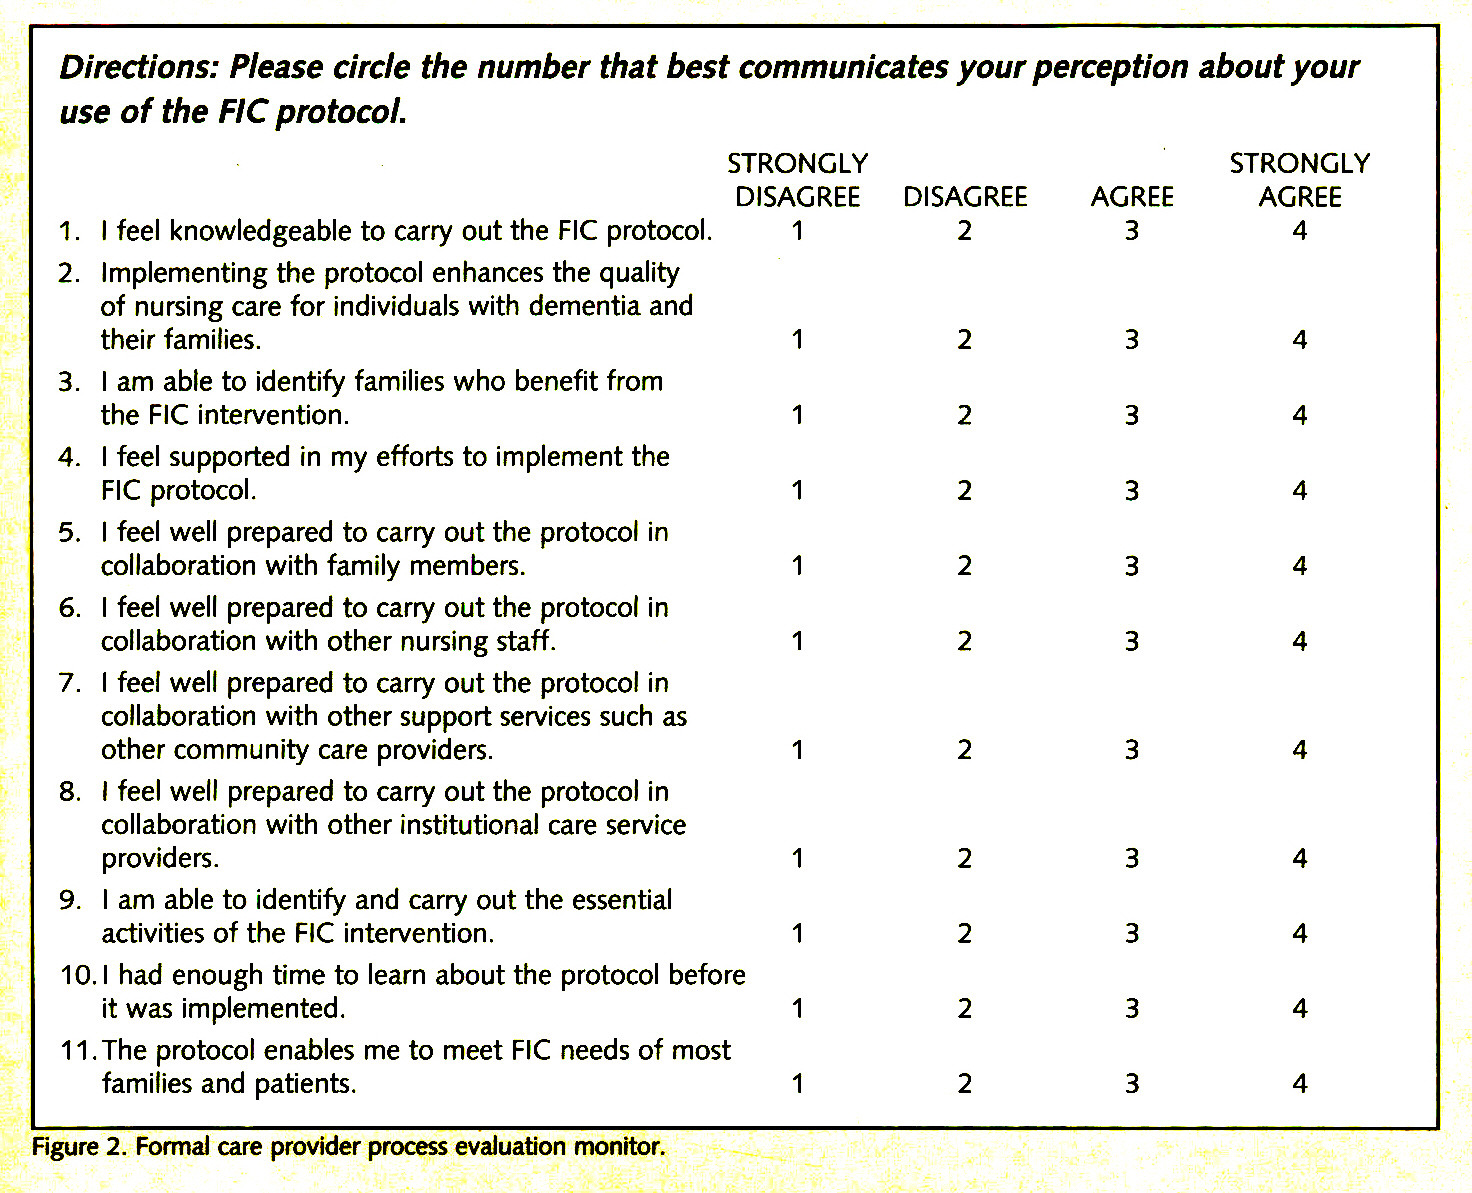 Figure 2. Formal care provider process evaluation monitor.